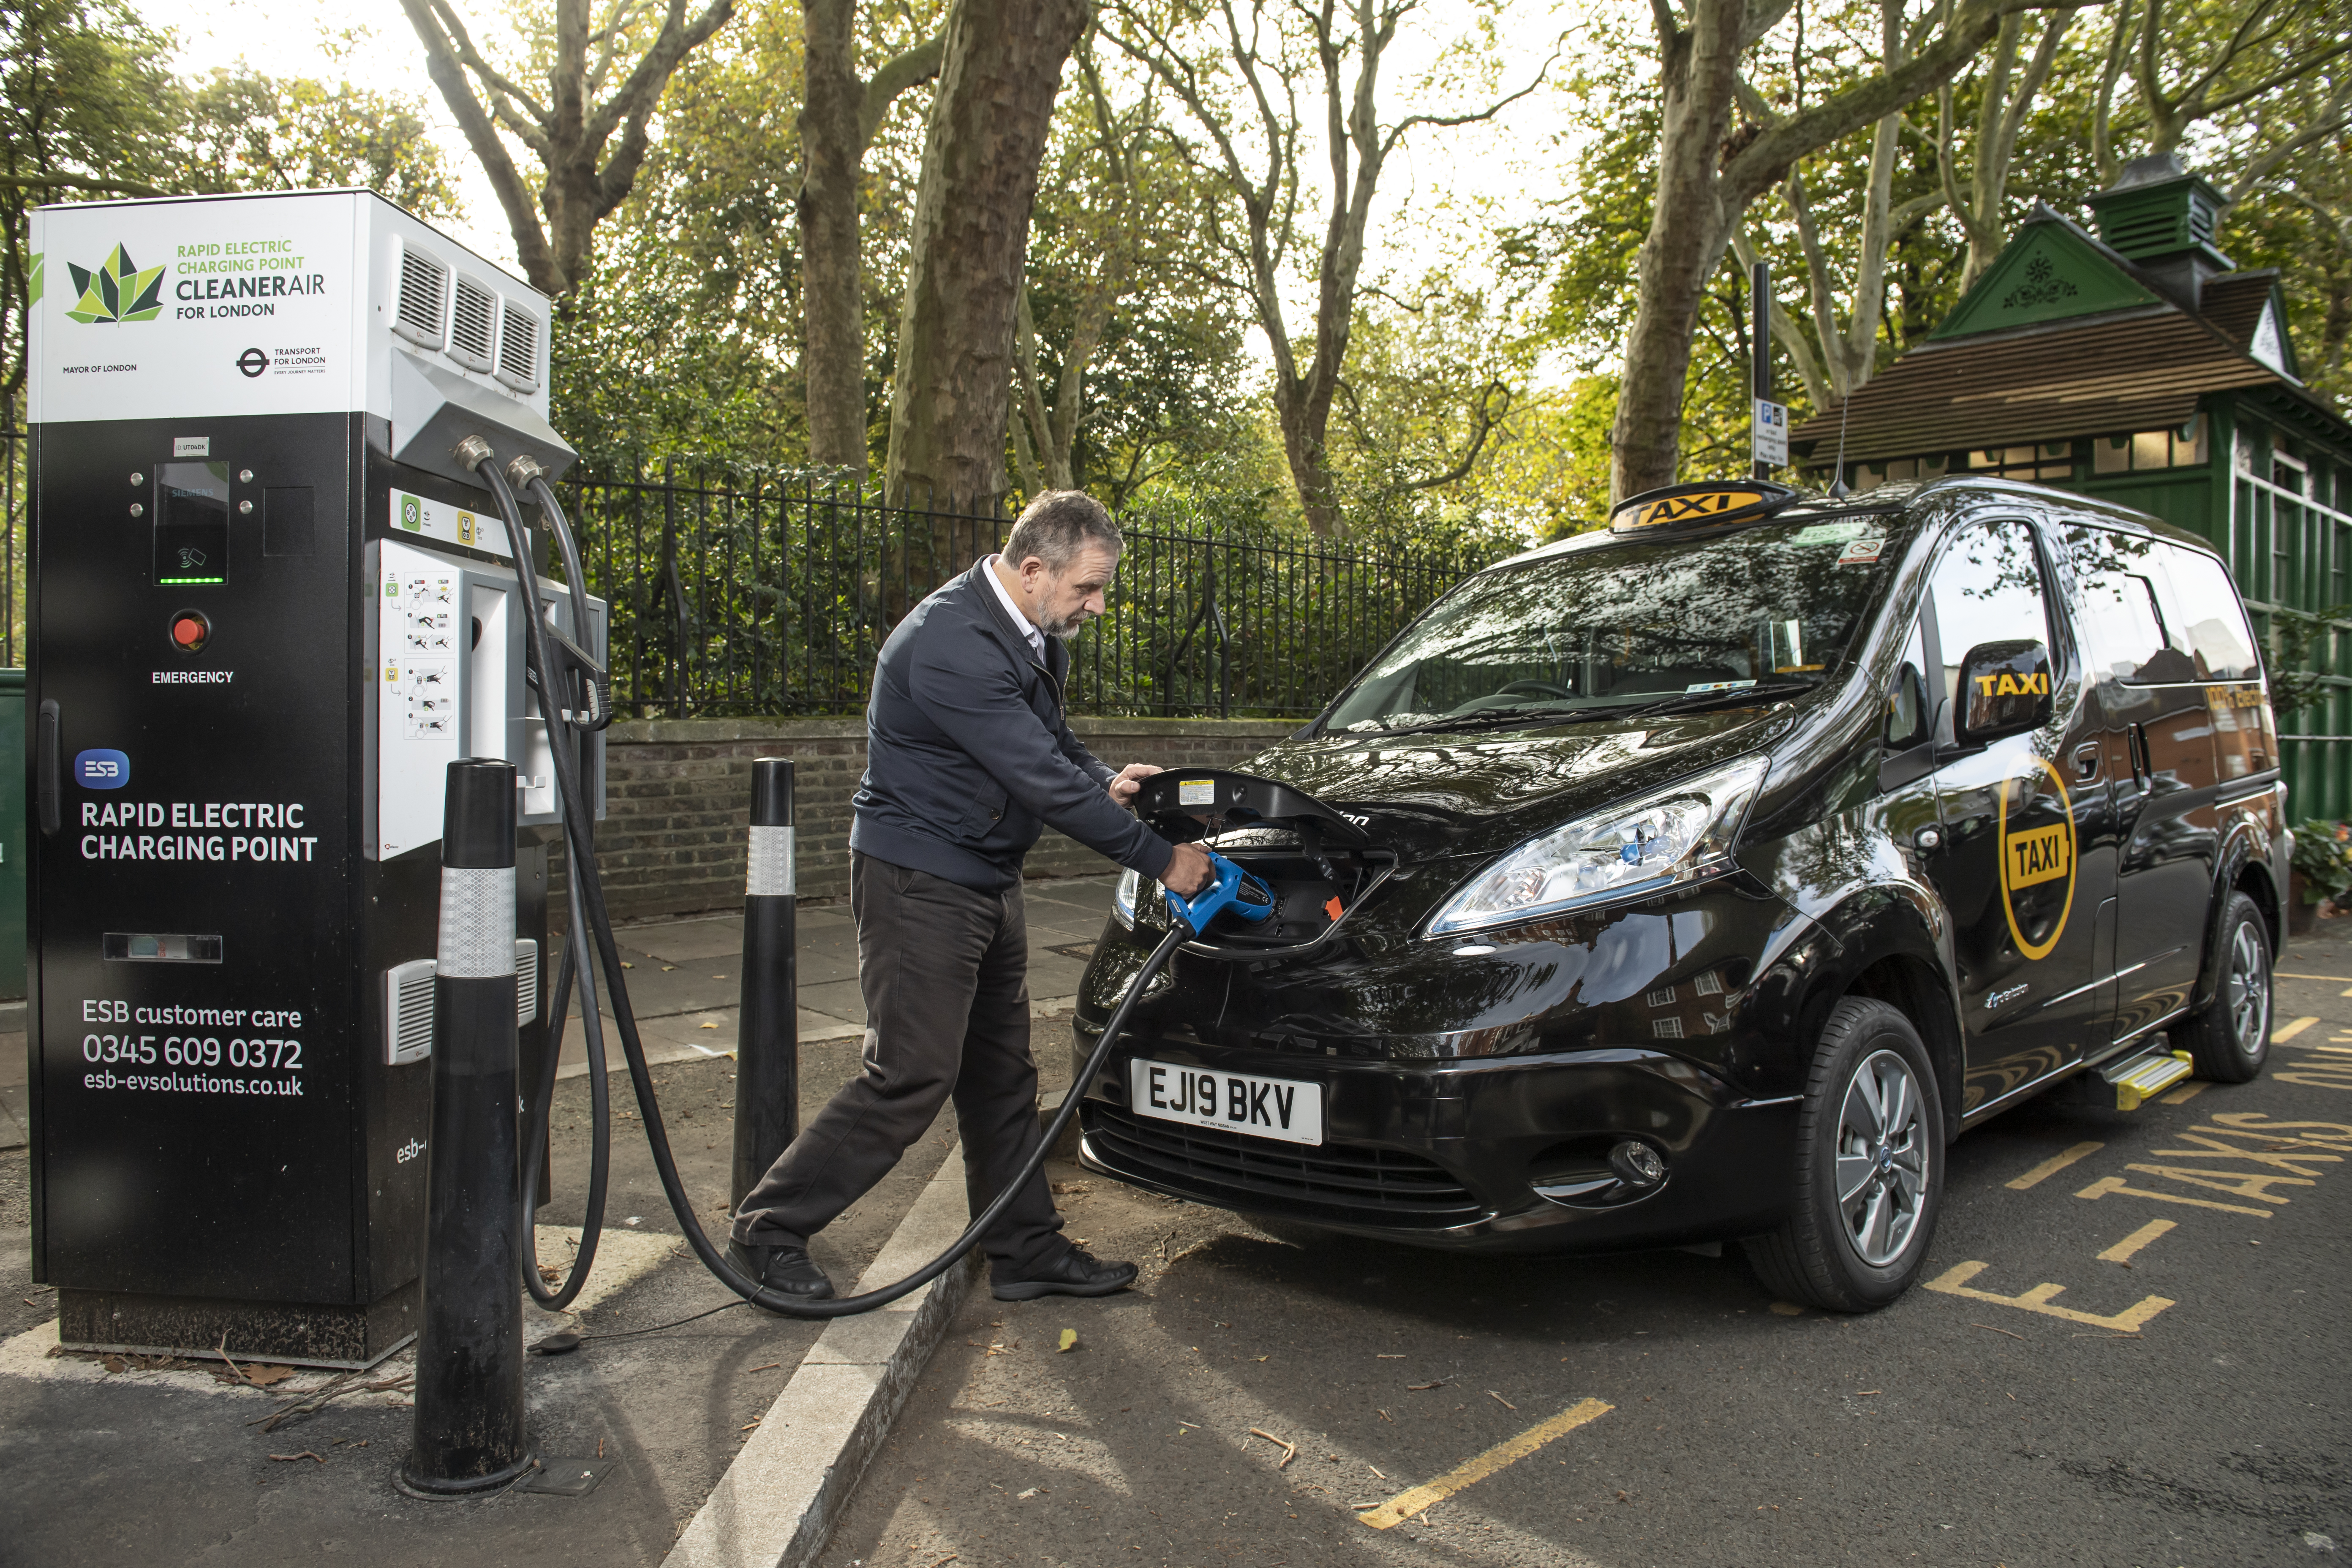 London's first 100 per cent electric taxi arrives at City Hall